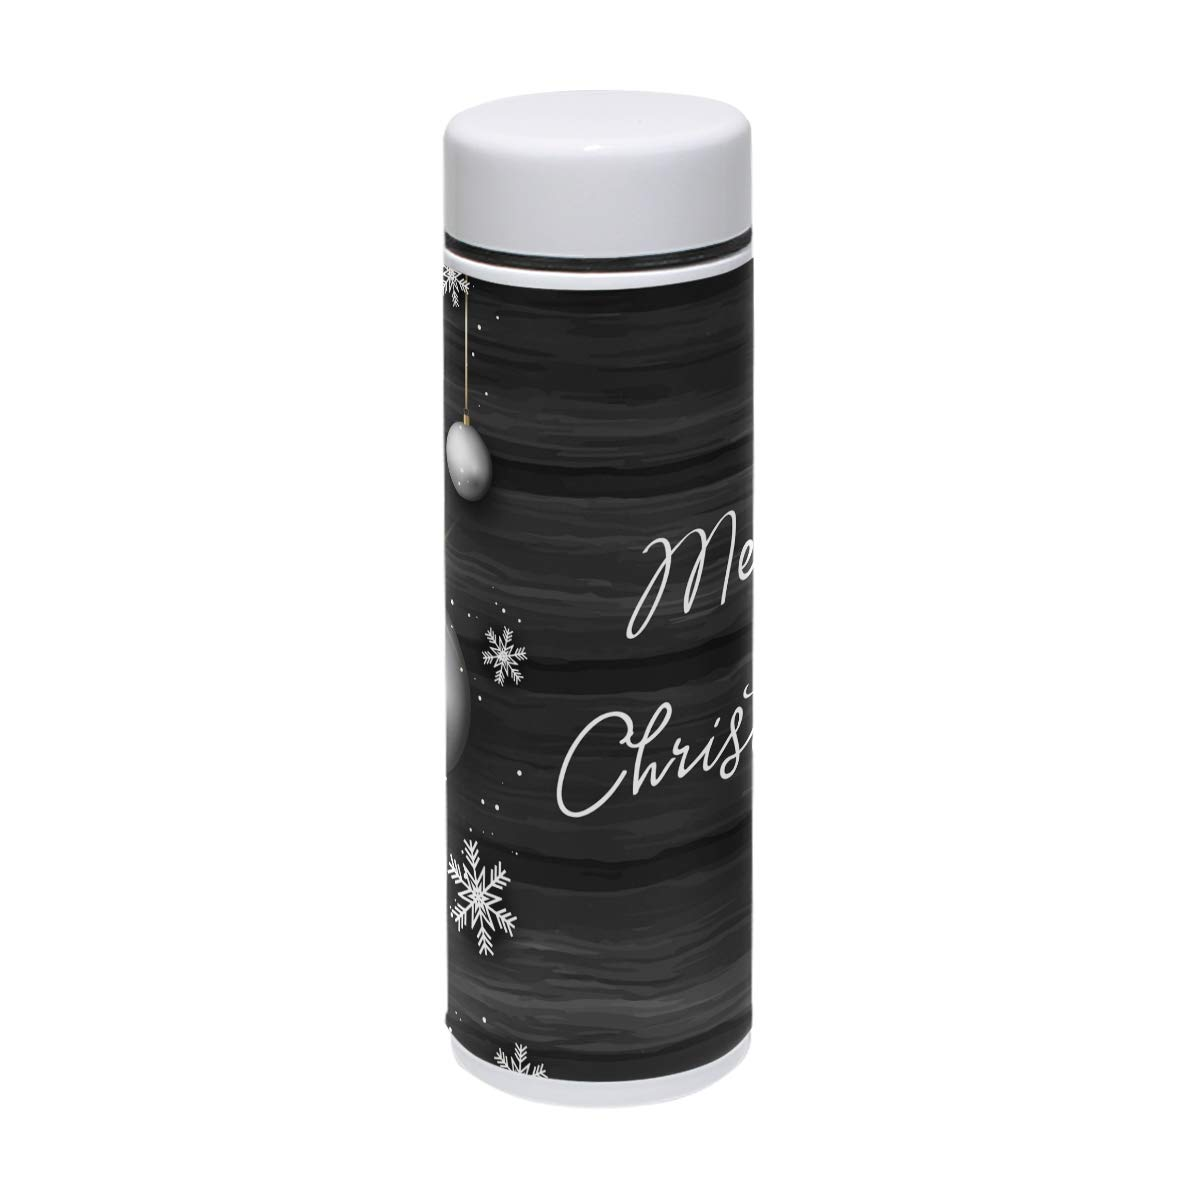 7.5 oz Water Bottle Christmas Baubles Wood Texture Drink Flasks Travel Mug Sports Thermos Stainless Steel PU Leather Double Wall Vacuum Insulated Cup Christmas Birthday Gift for Kids/Friends/Family